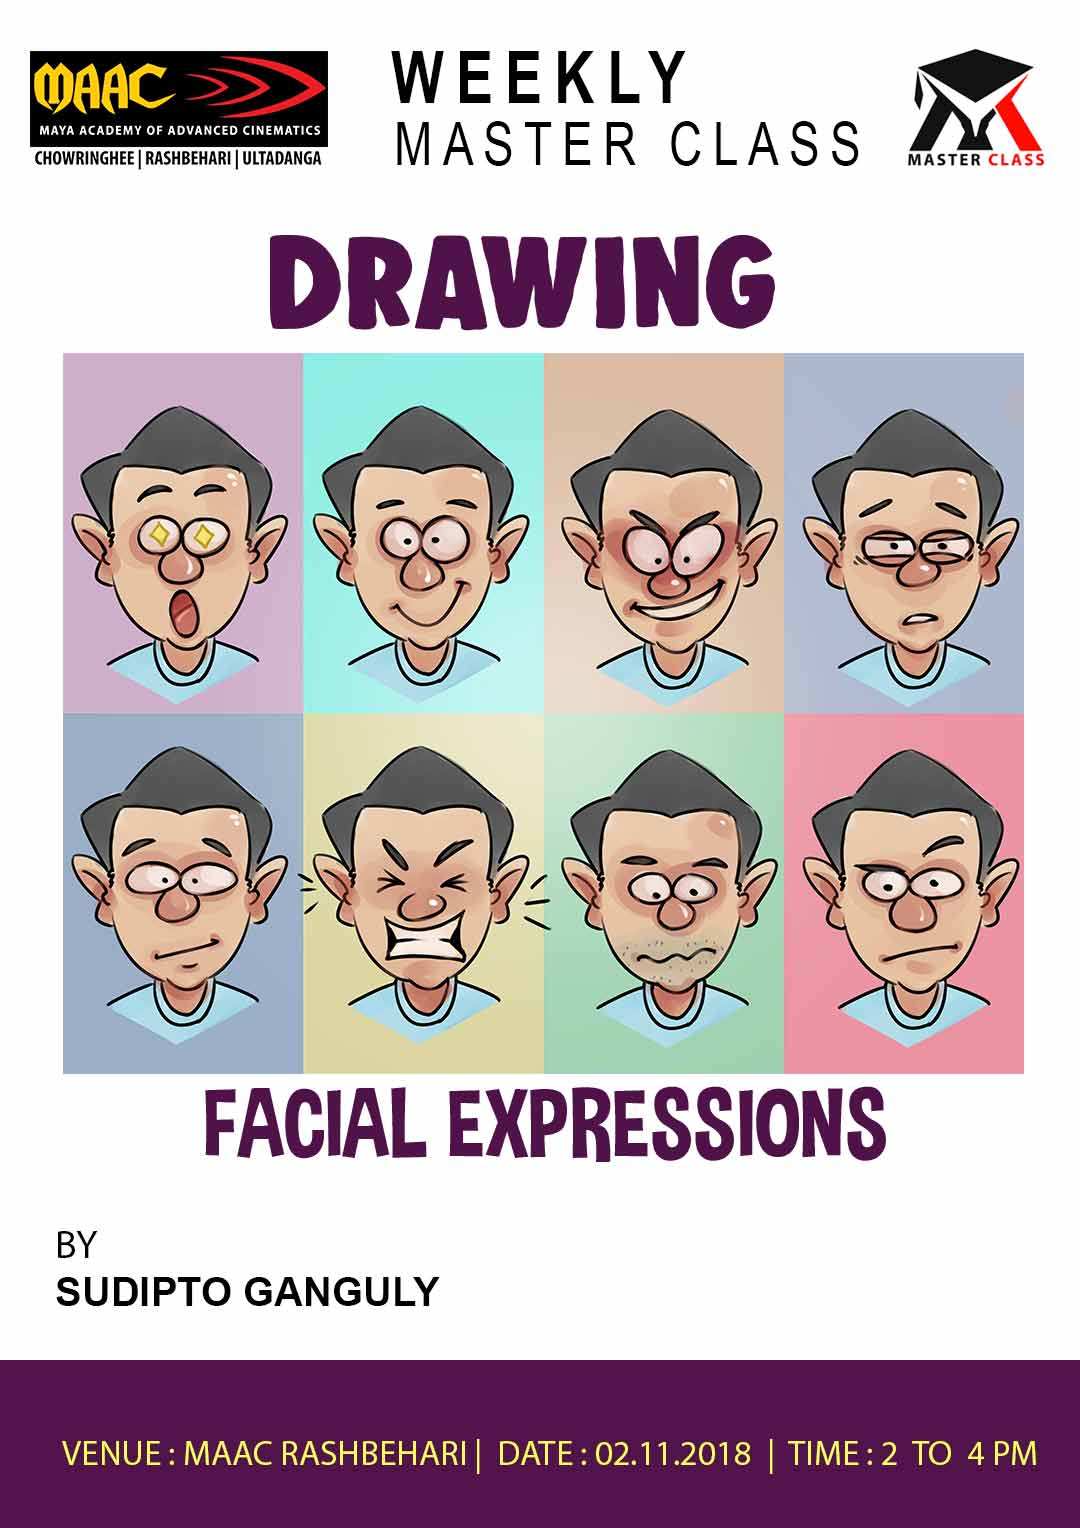 Weekly Master Class on Drawing Facial Expressions